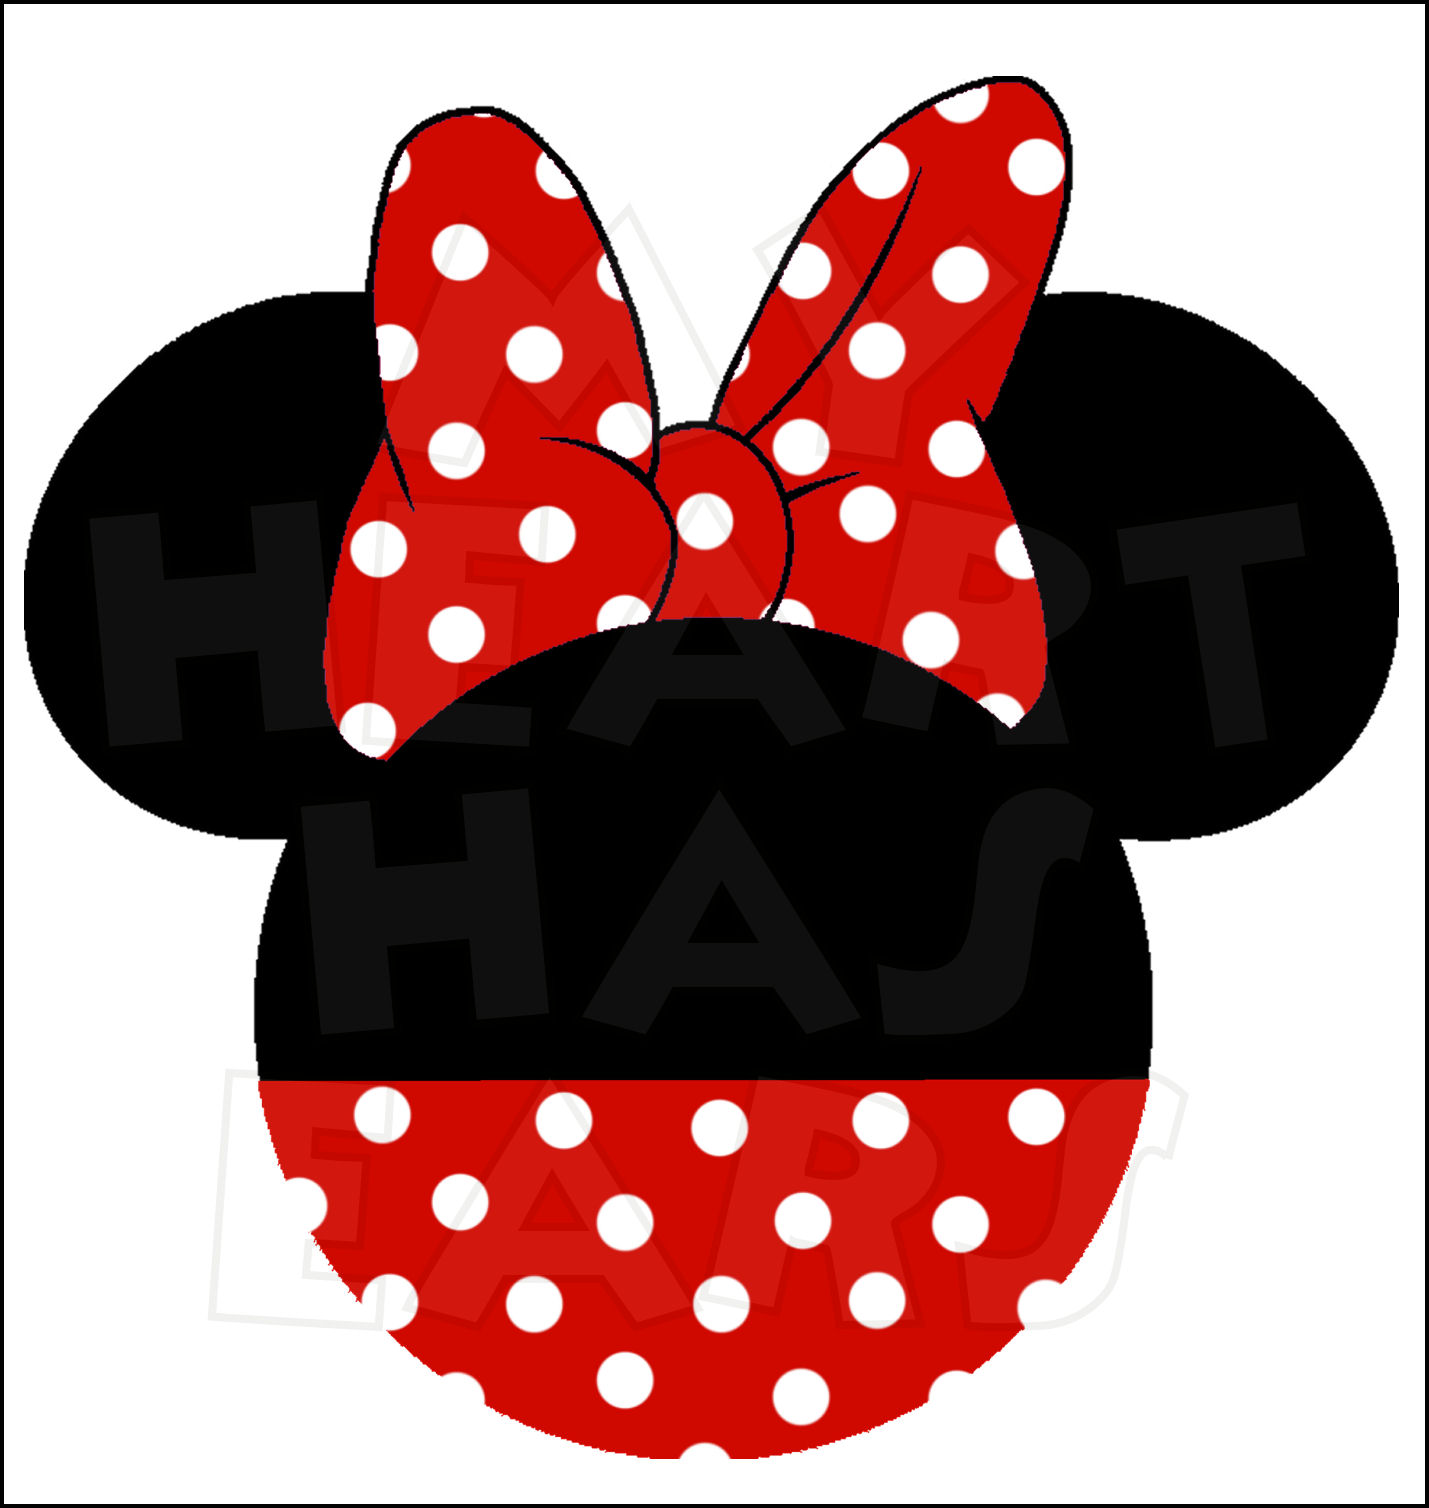 Minnie mouse head clipart clip art transparent library Free Minnie Mouse Head Outline, Download Free Clip Art, Free Clip ... clip art transparent library